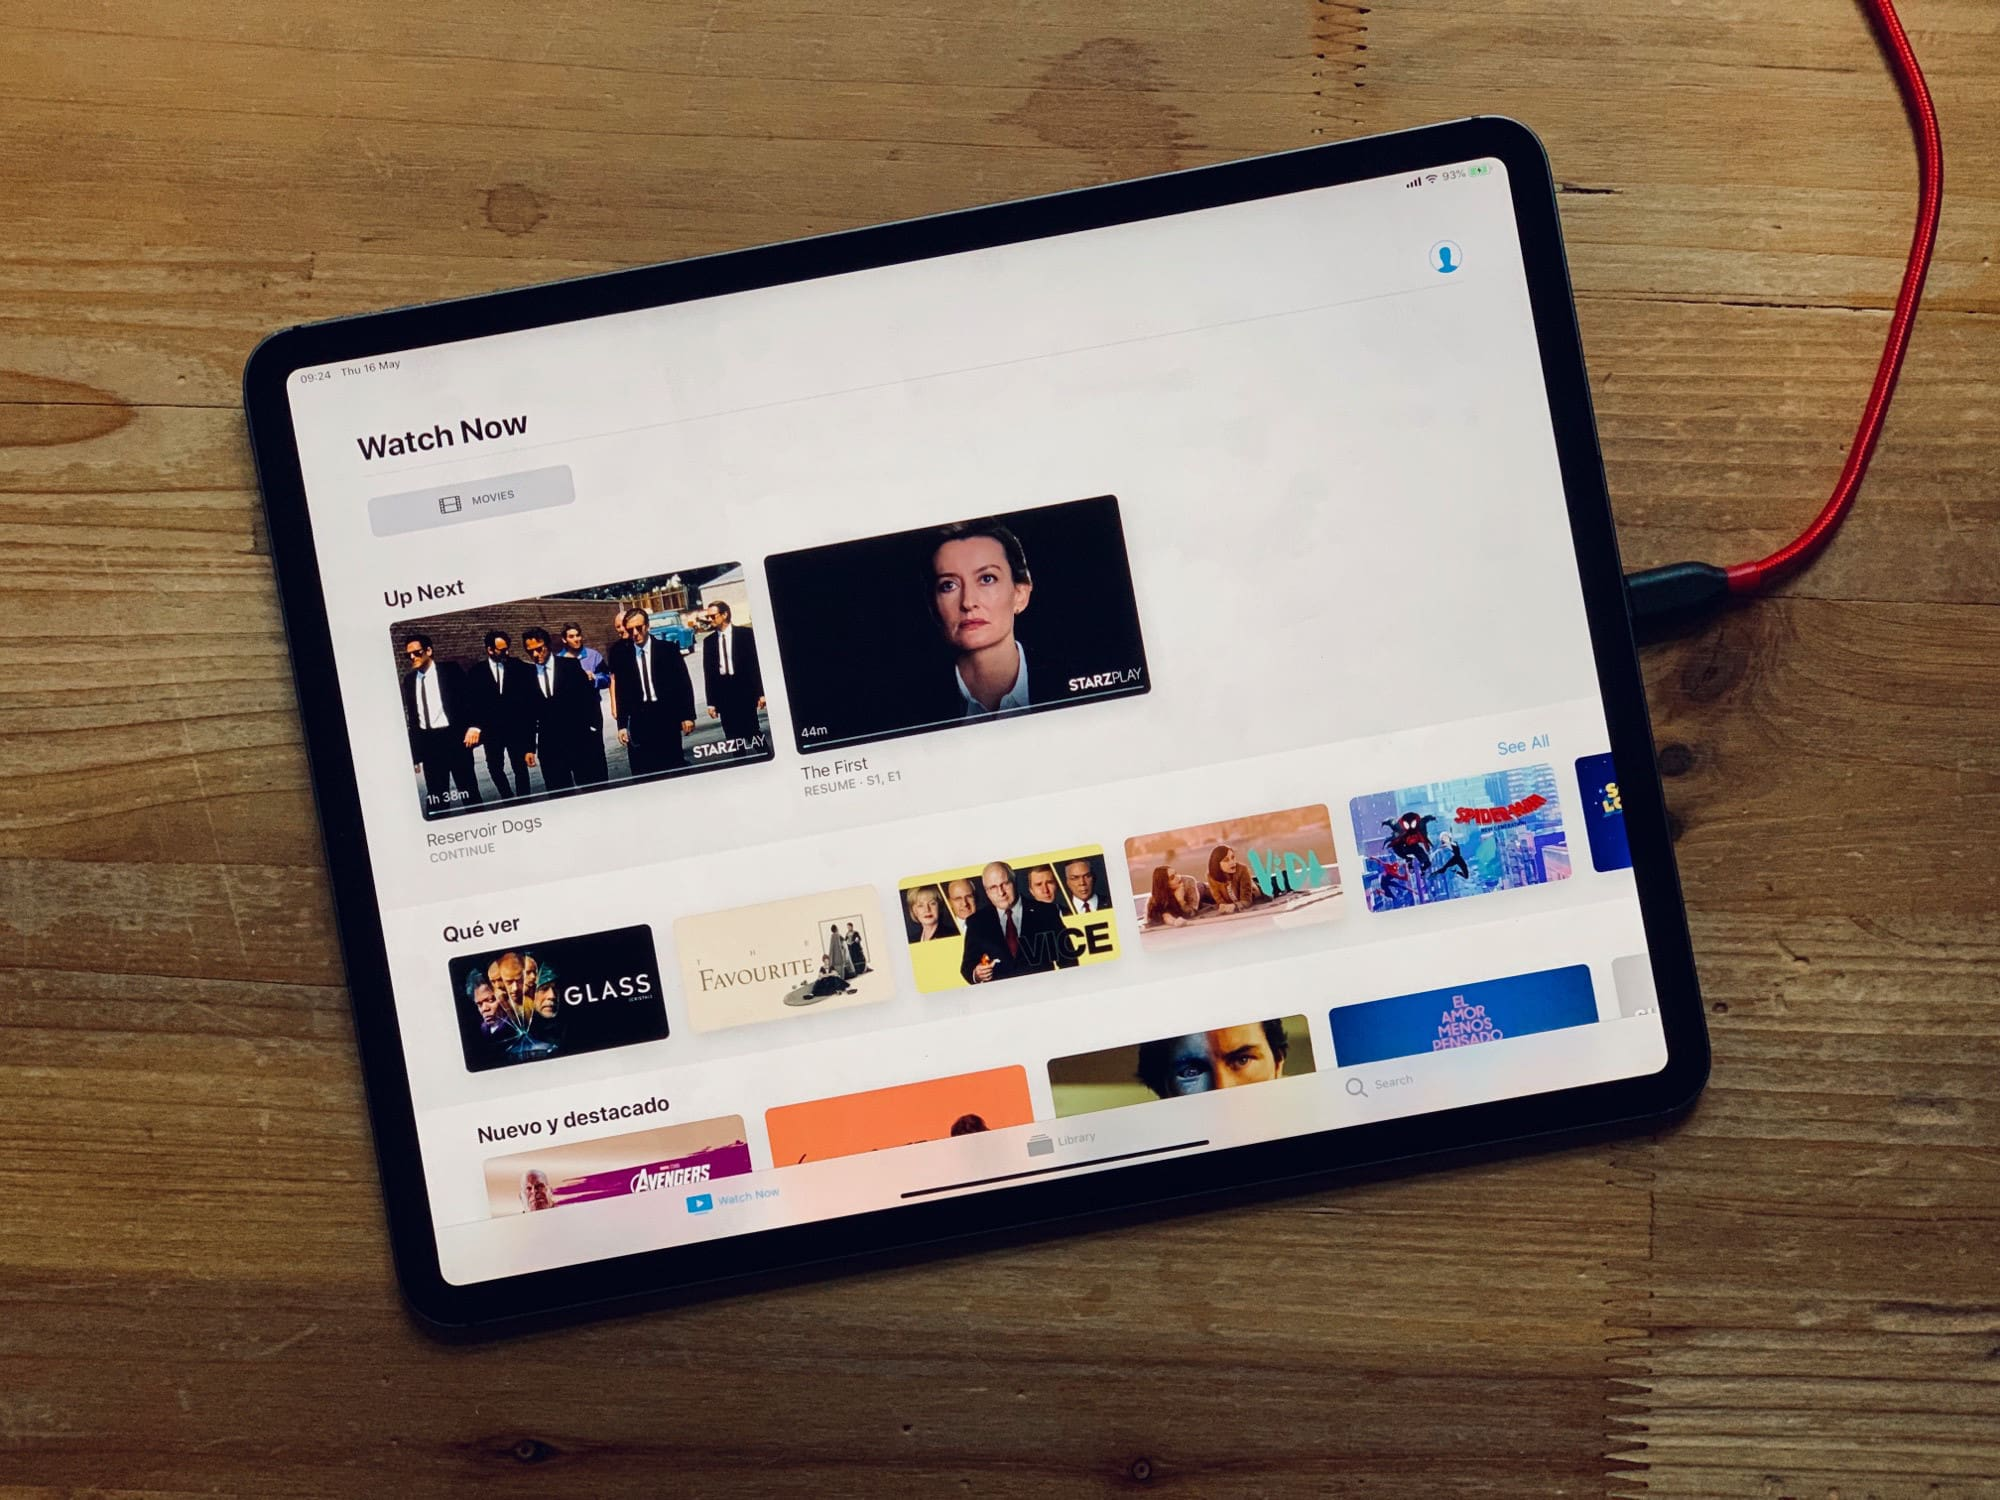 How to download and watch offline in the new Apple TV app | Cult of Mac